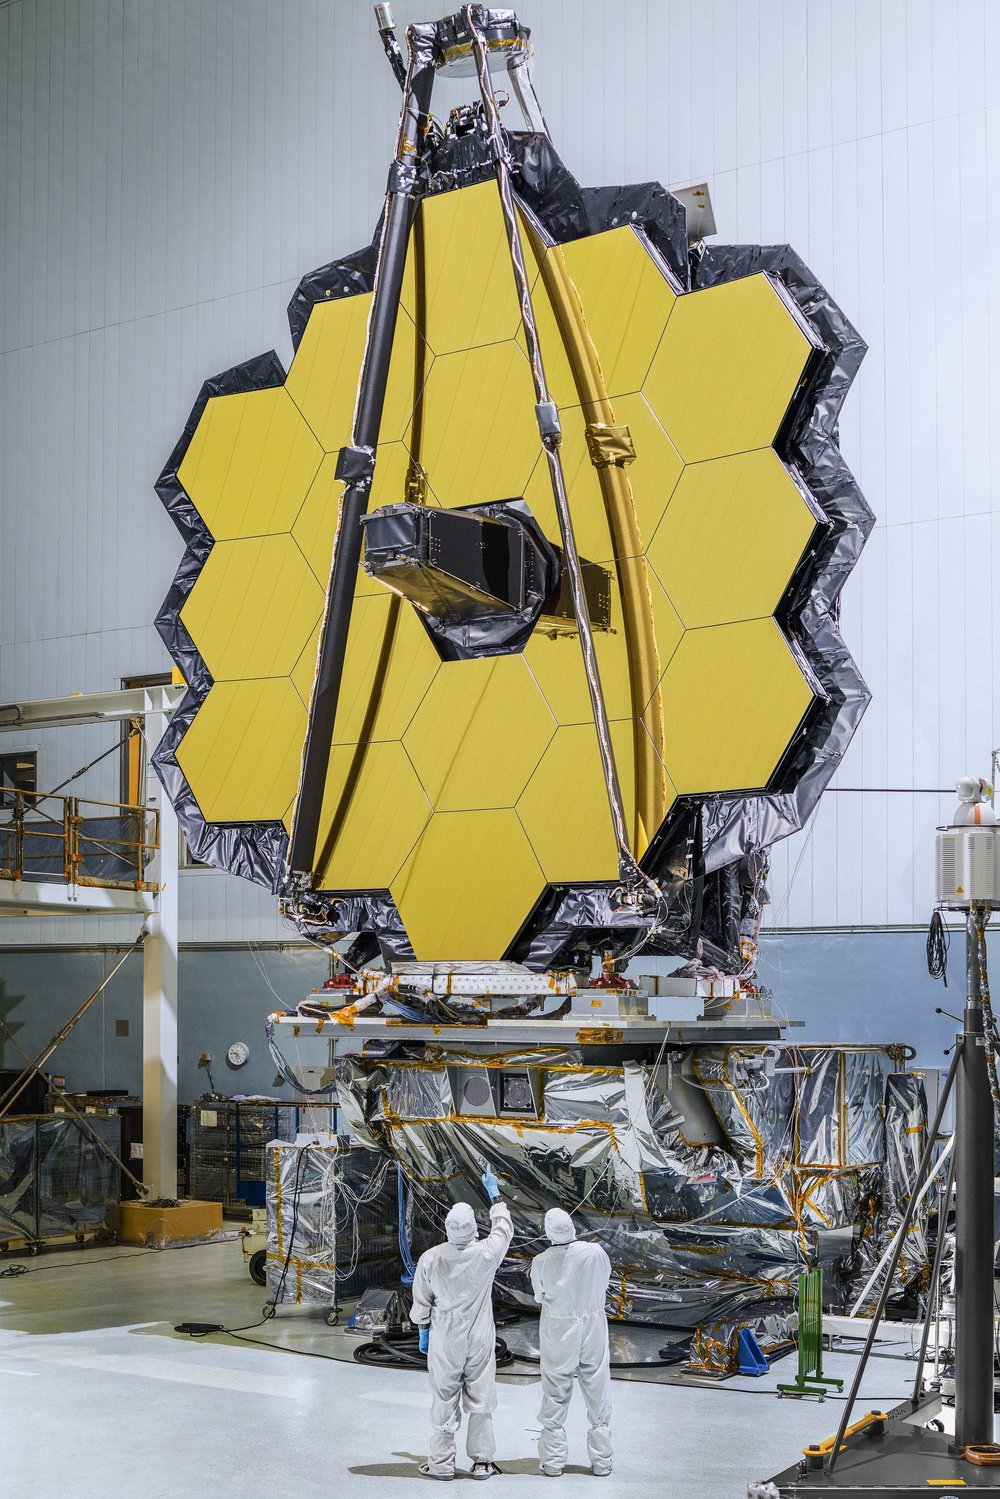 The James Webb Space Telescope is constructed of 18 hexagonal mirror panels, and inspires artists around the globe.   NASA  (CC BY-NC 2.0)